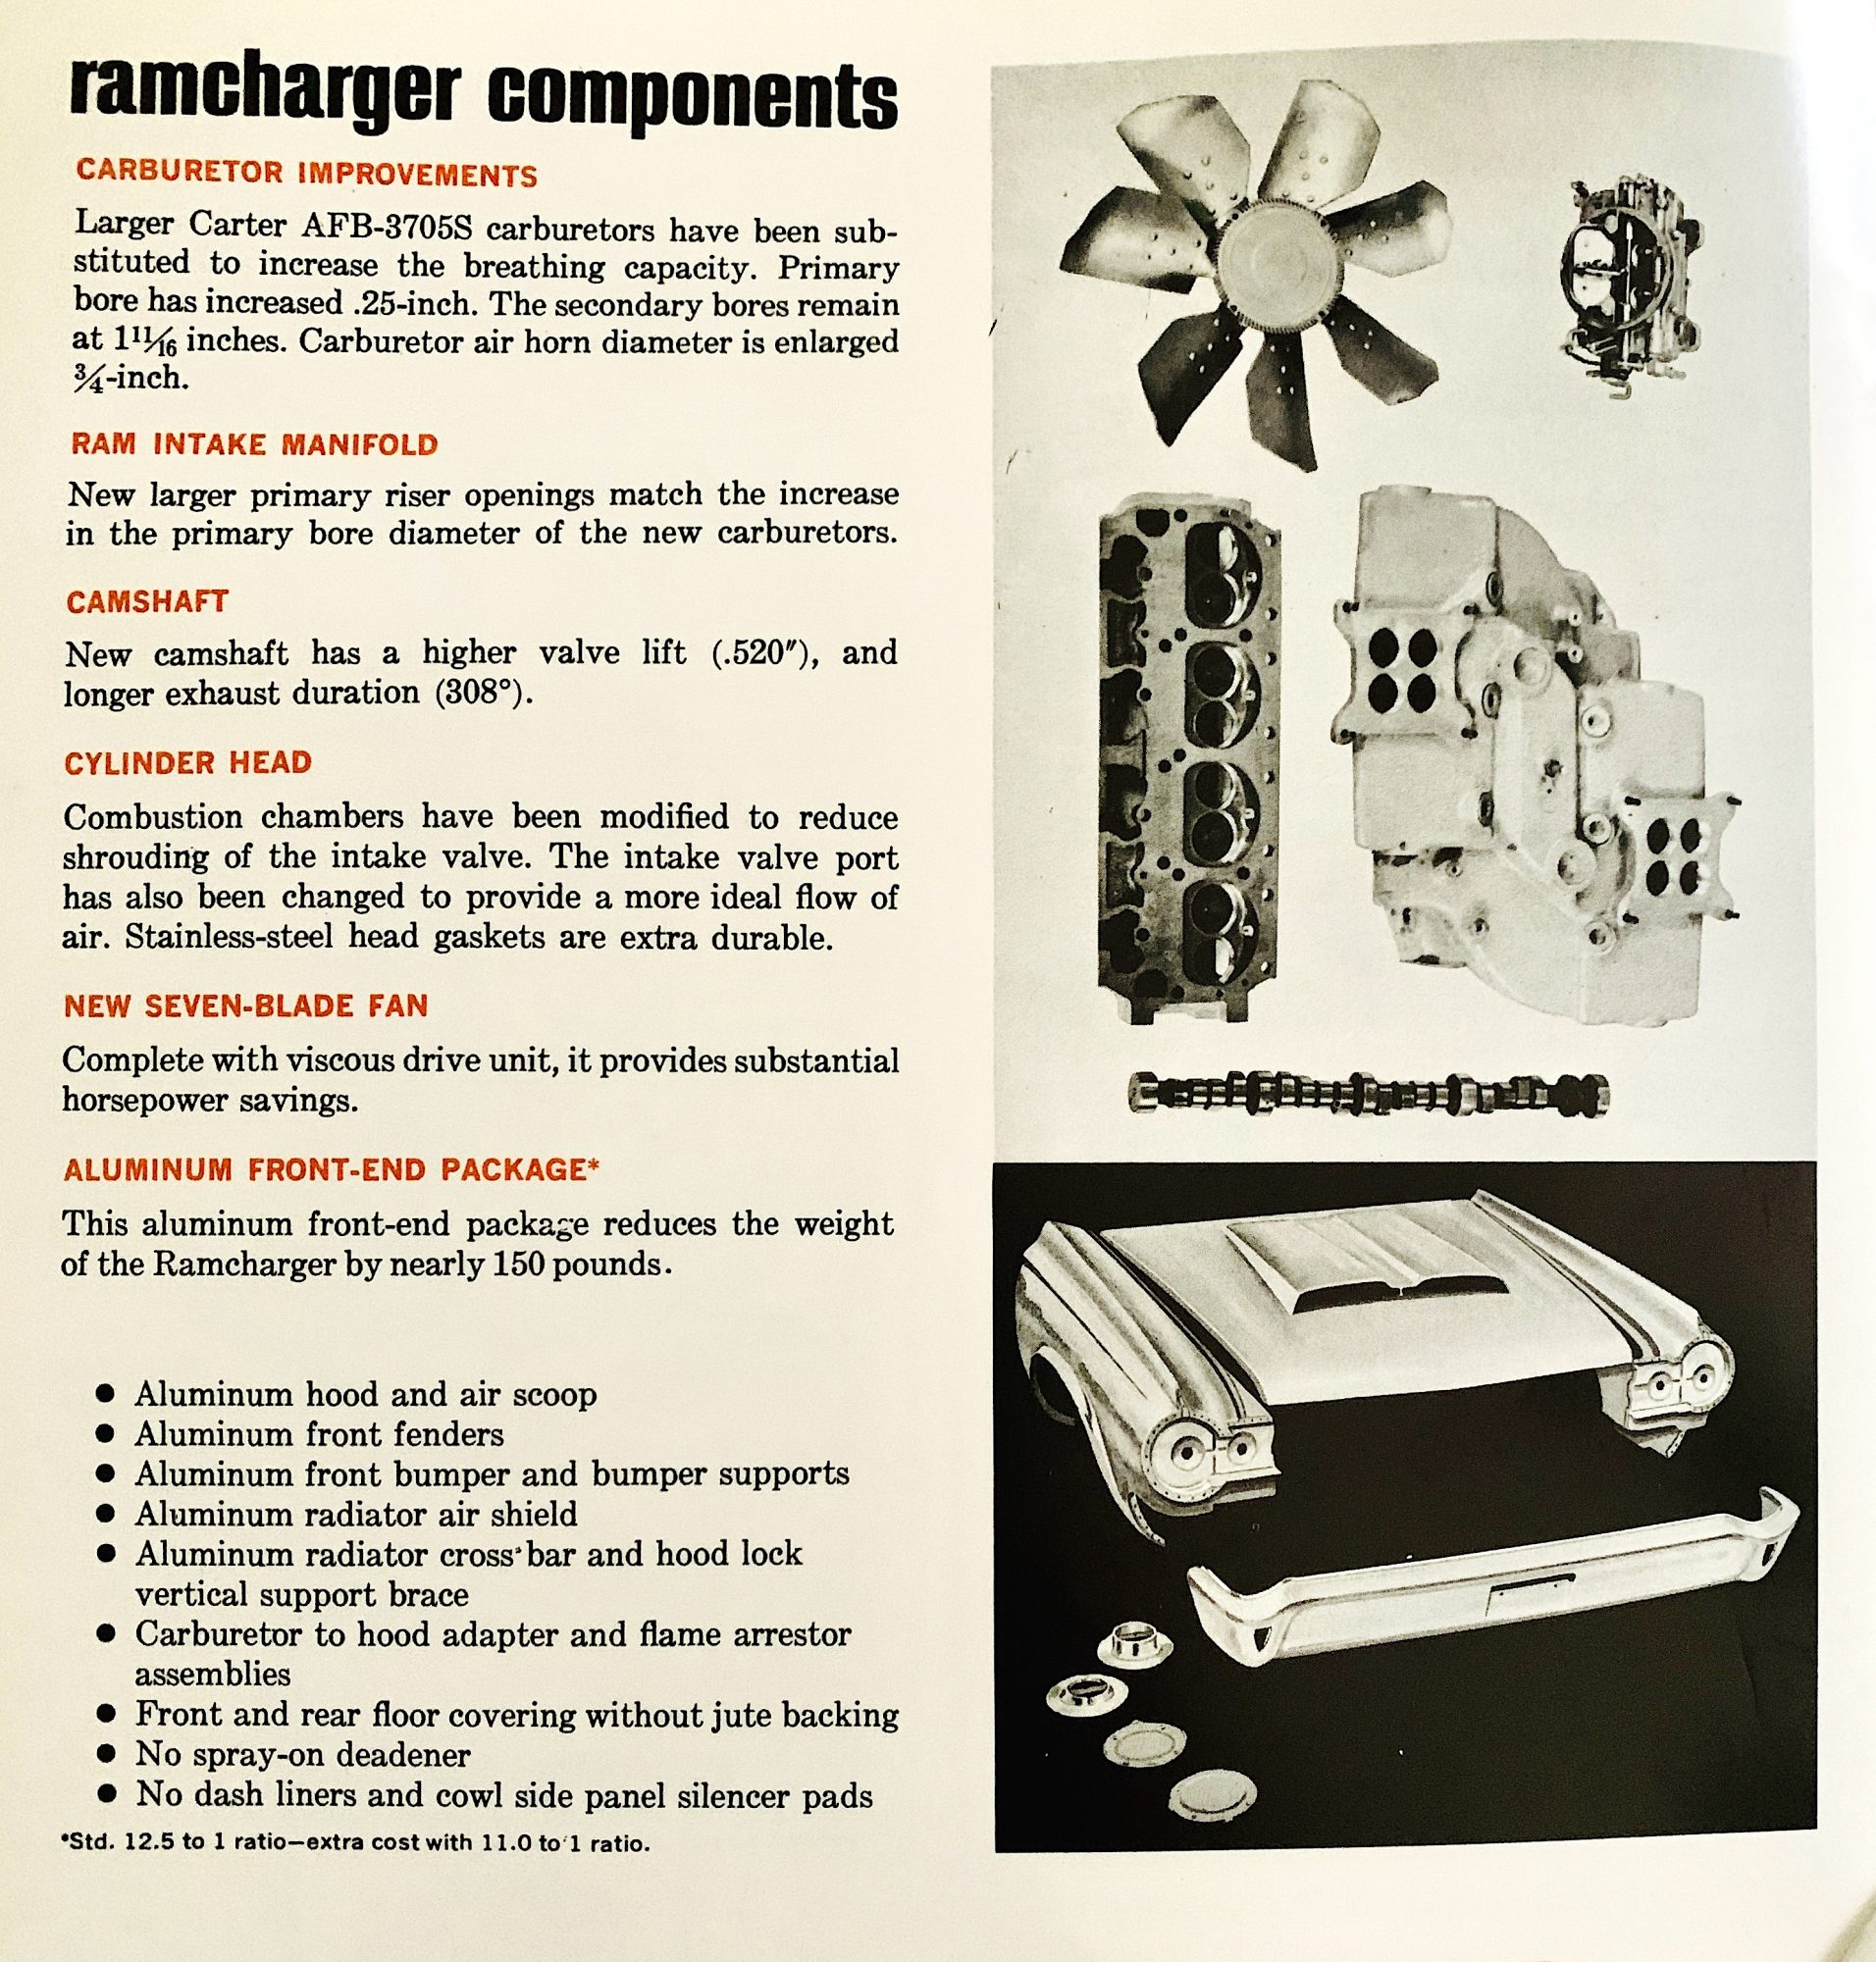 Ramcharger components manual